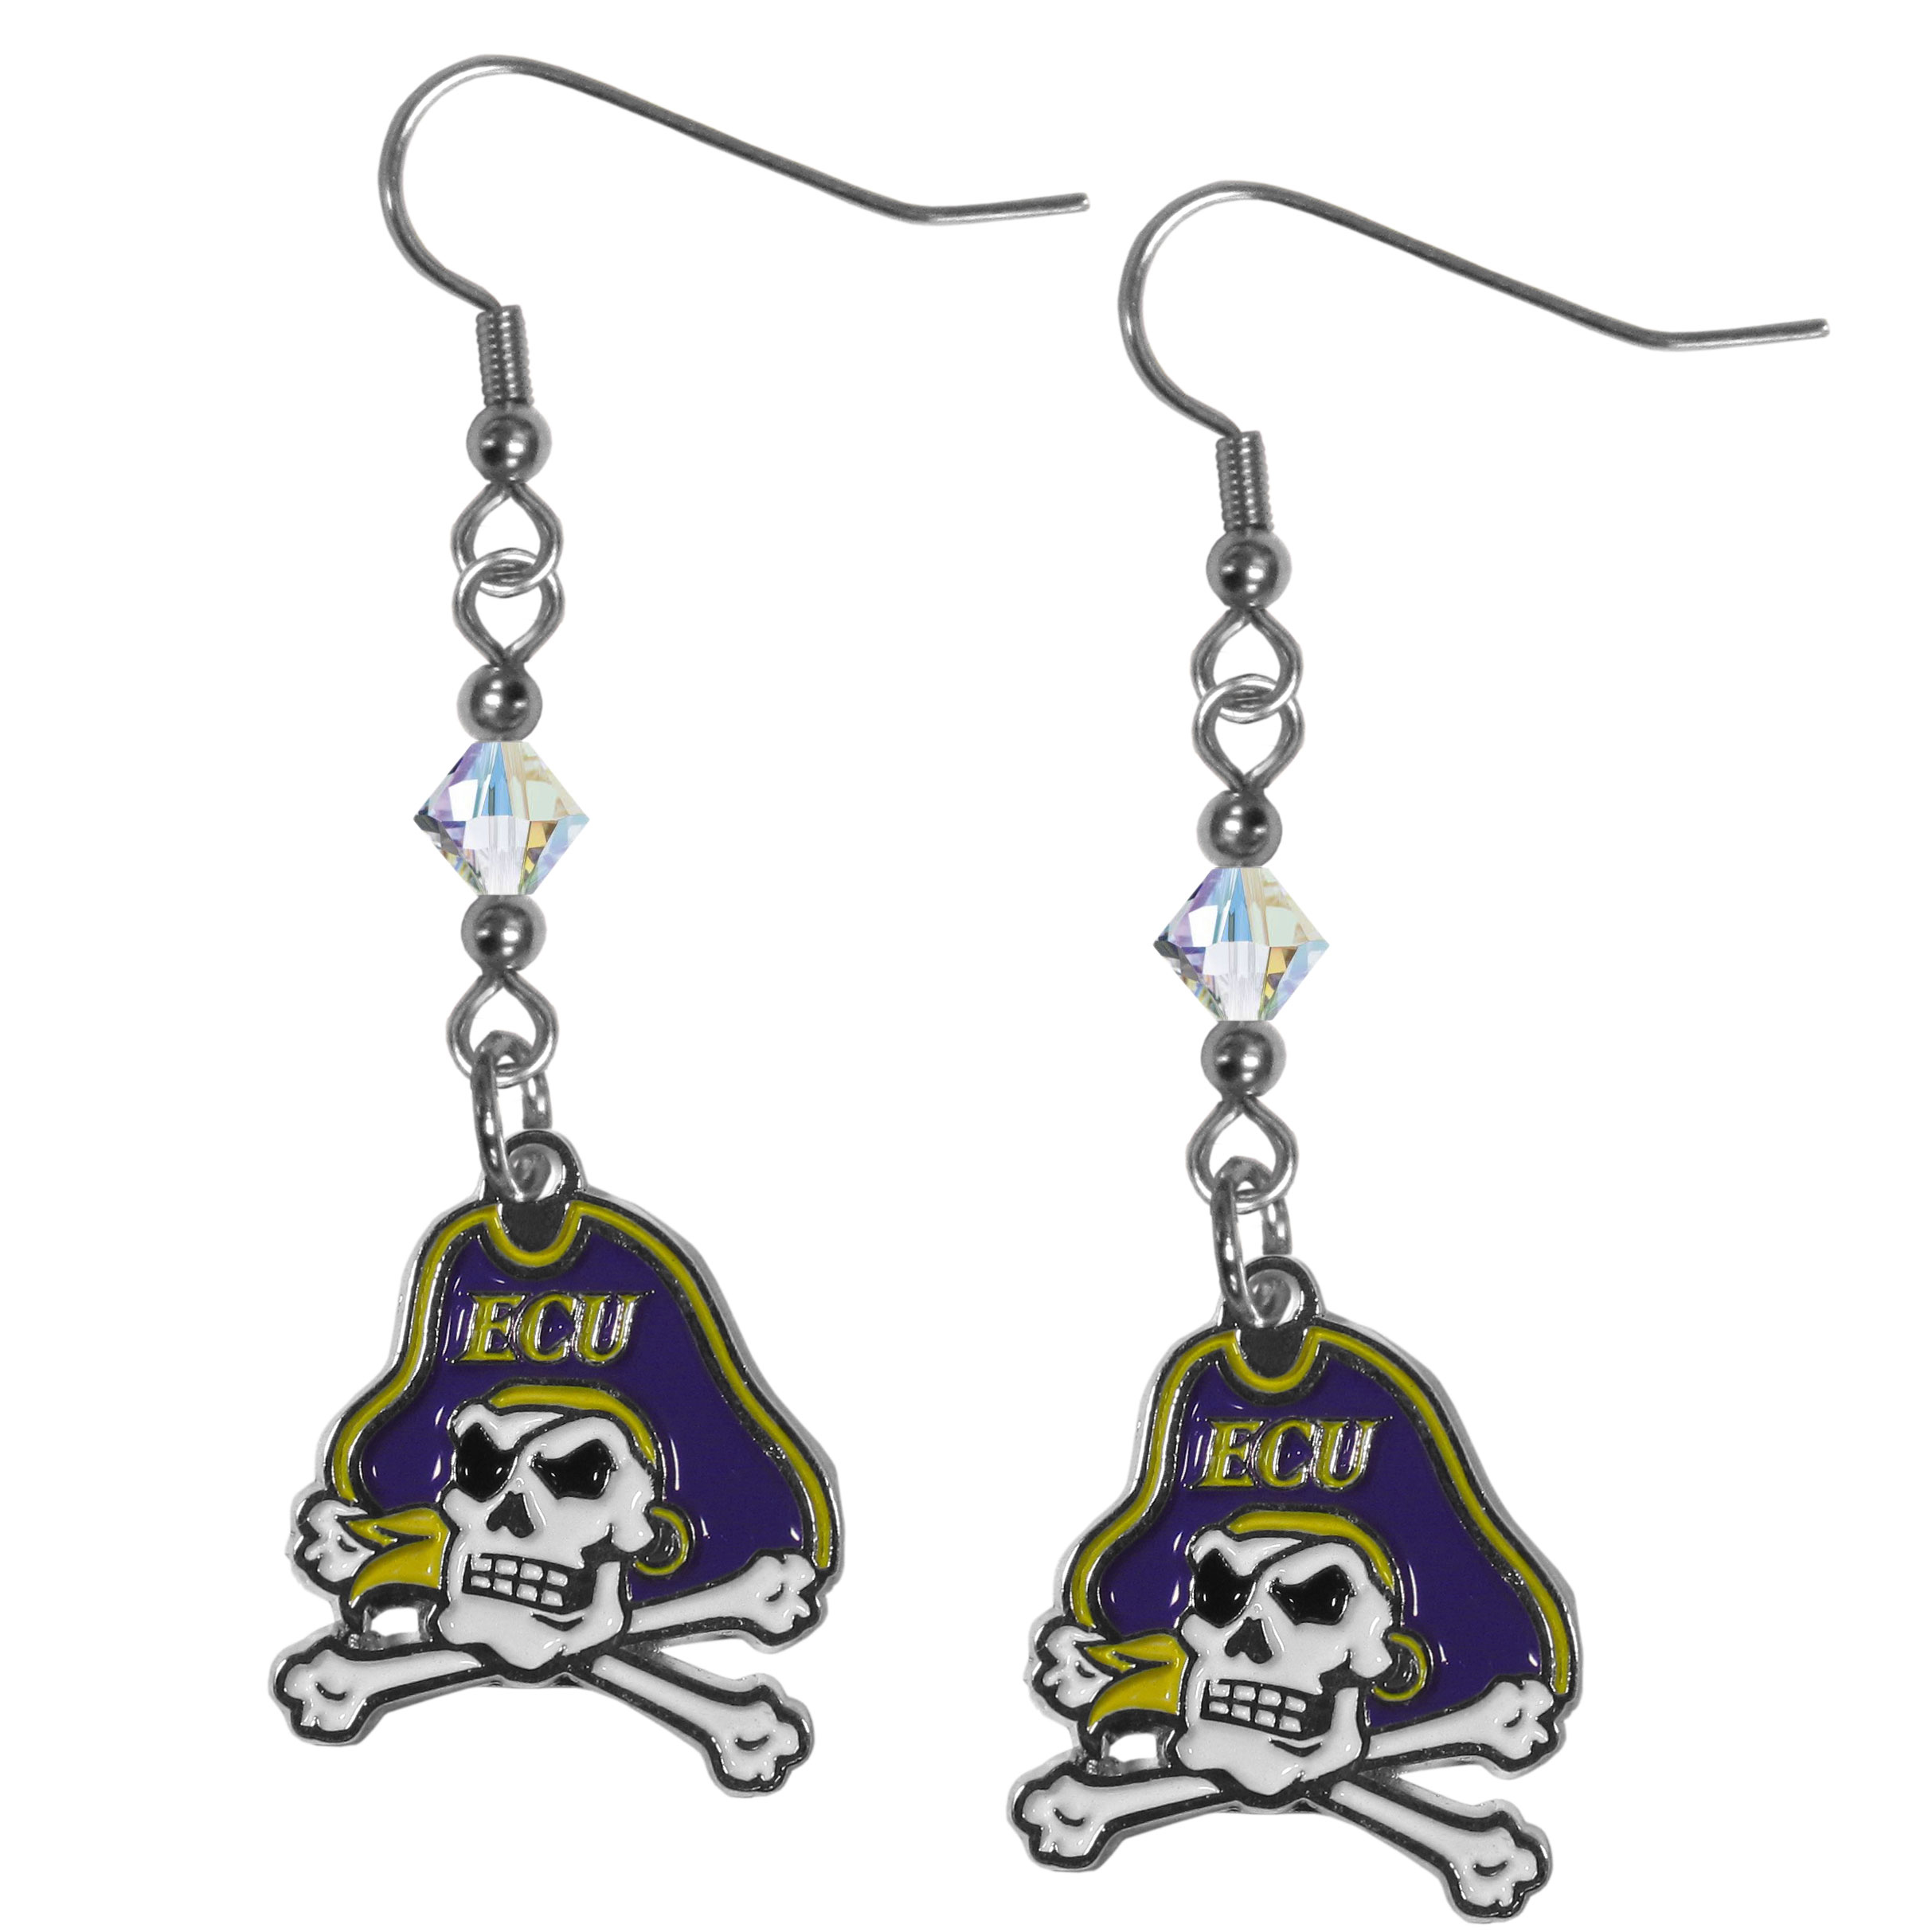 East Carolina Pirates Crystal Dangle Earrings - Our crystal dangle earrings are the perfect accessory for your game day outfit! The earrings are approximately 1.5 inches long and feature an iridescent crystal bead and nickel free chrome East Carolina Pirates charm on nickel free, hypoallergenic fishhook posts.